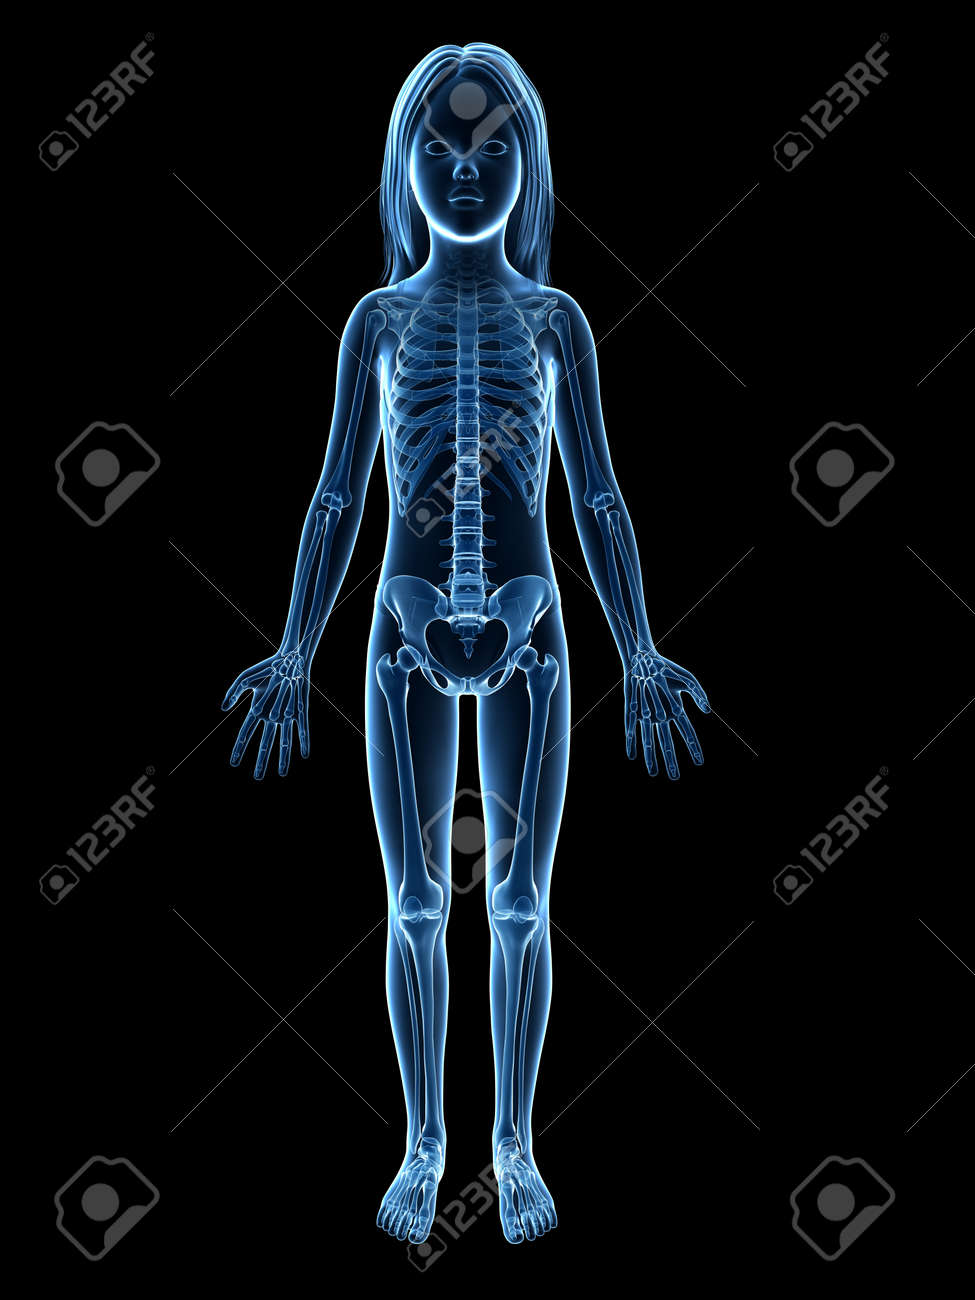 Anatomy Of A Young Girl Skeleton Stock Photo Picture And Royalty